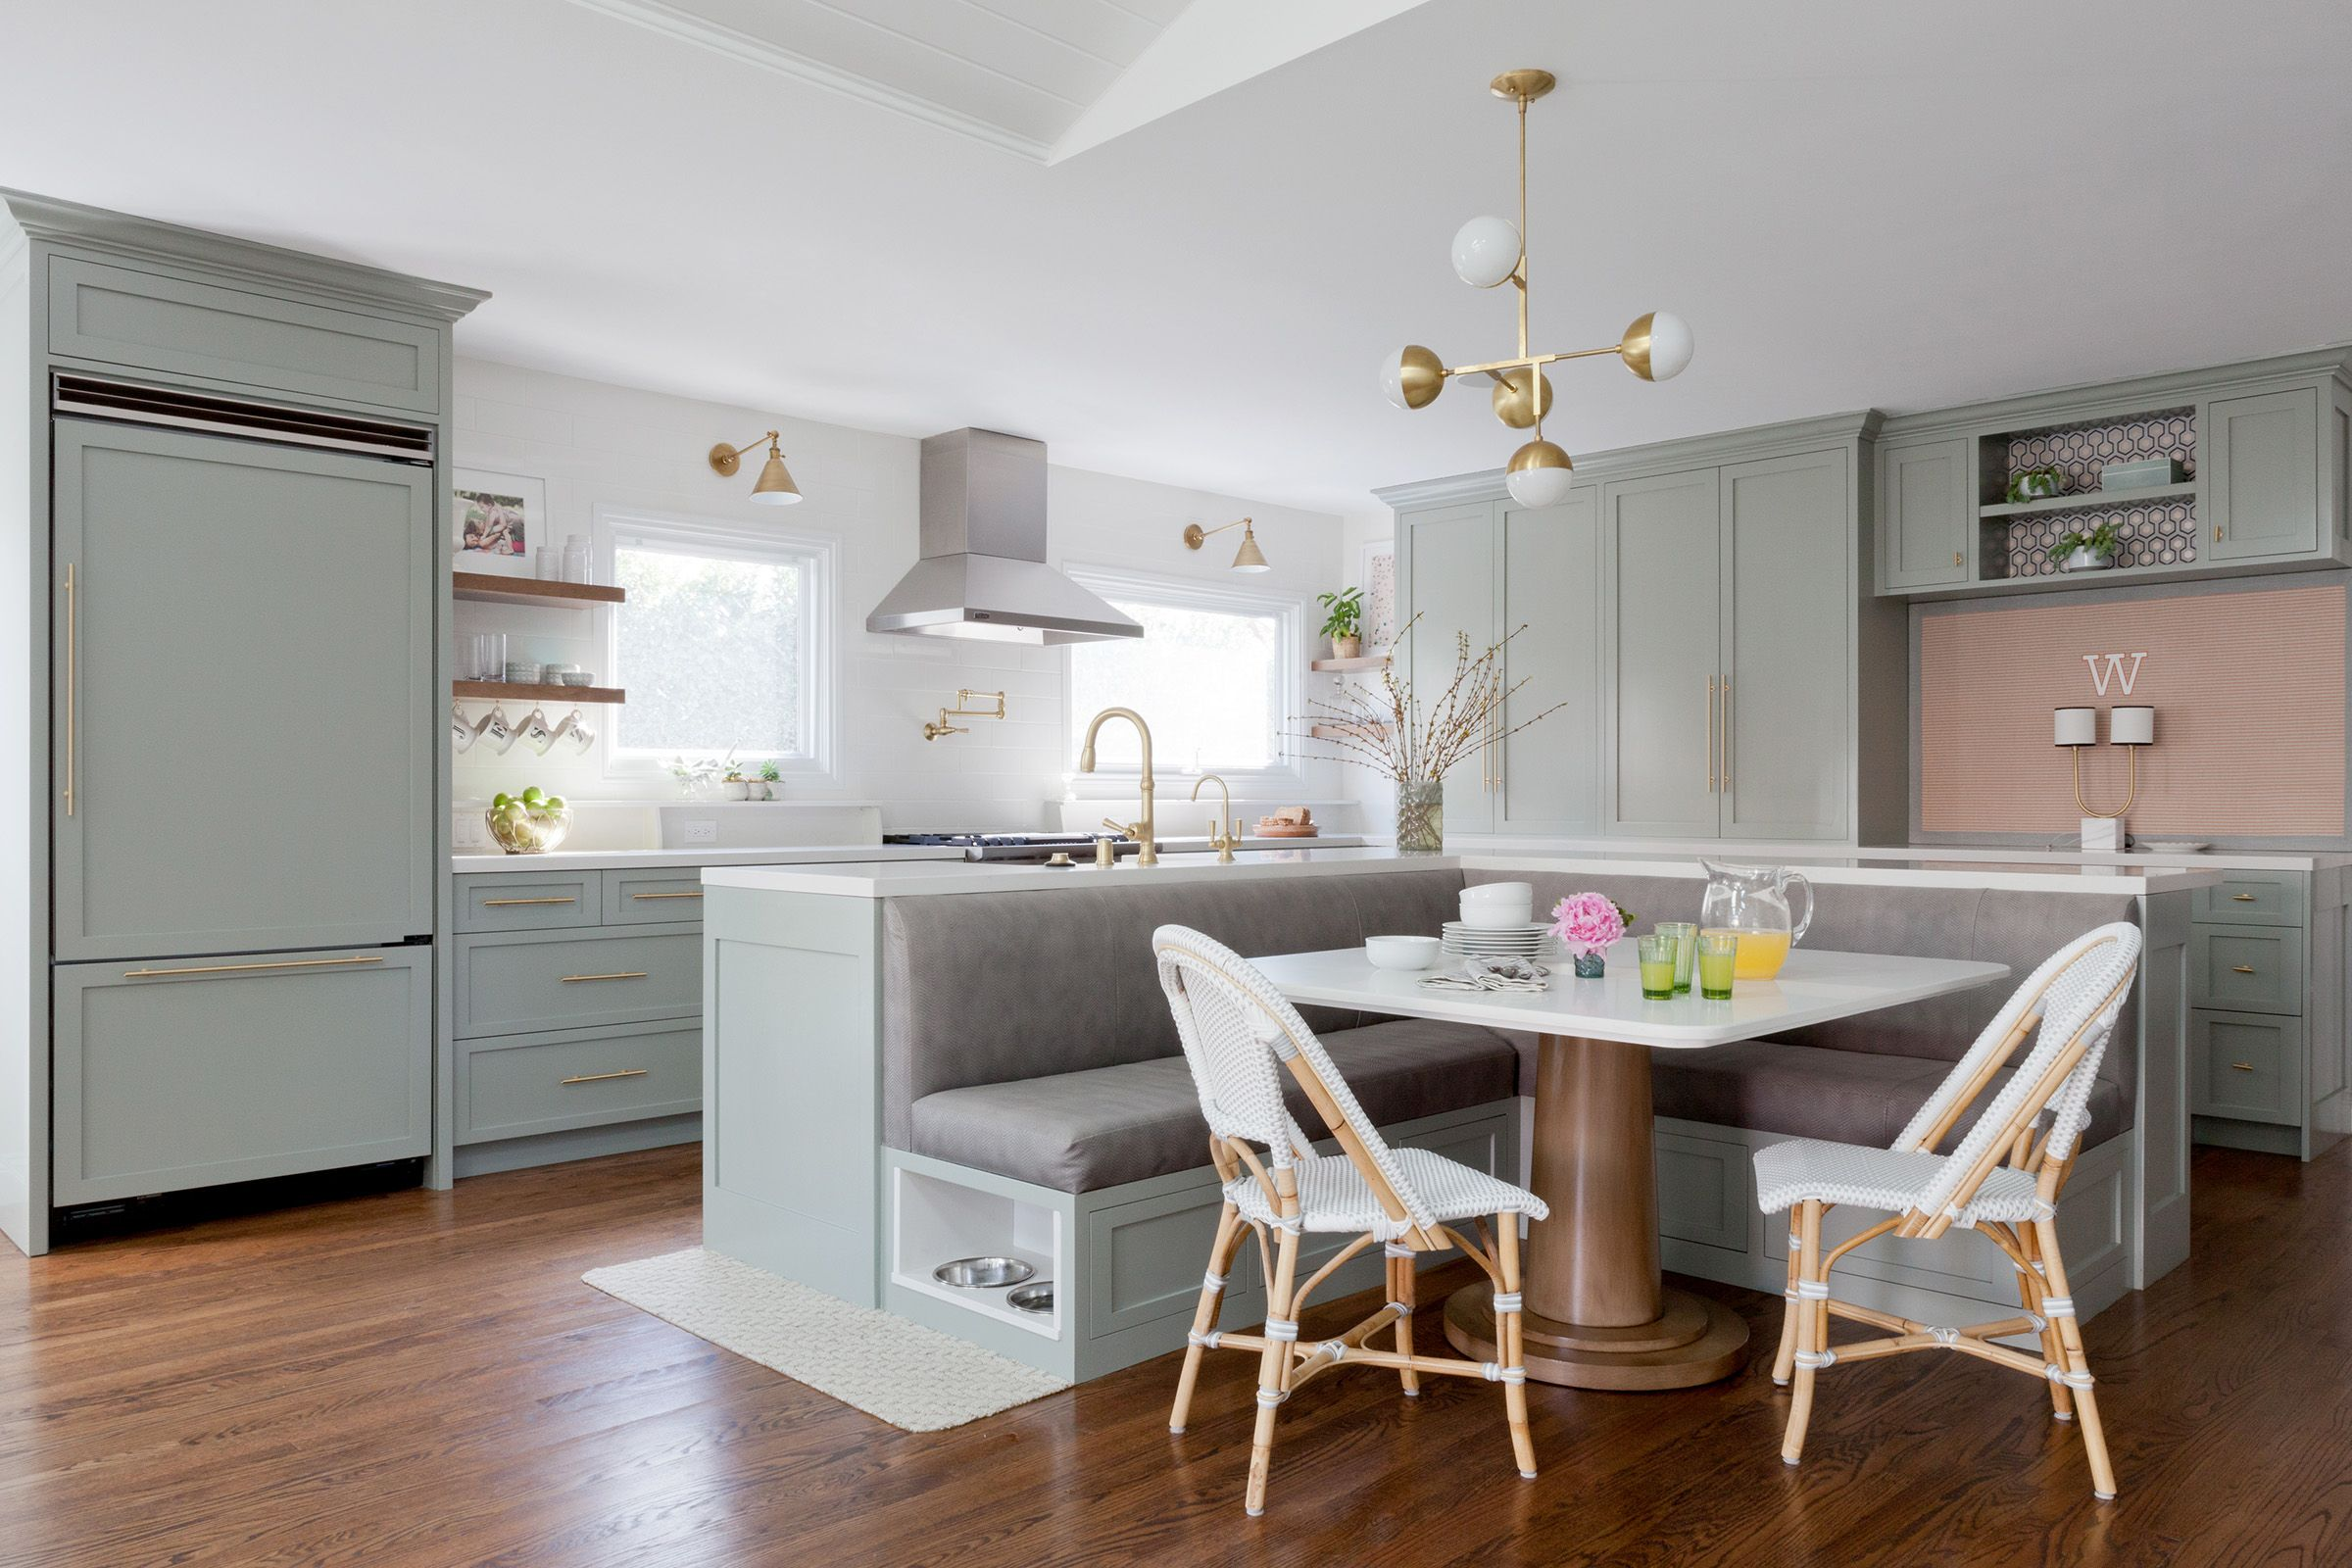 Best Farrow And Ball Pigeon Colored Kitchen With An Orb 400 x 300